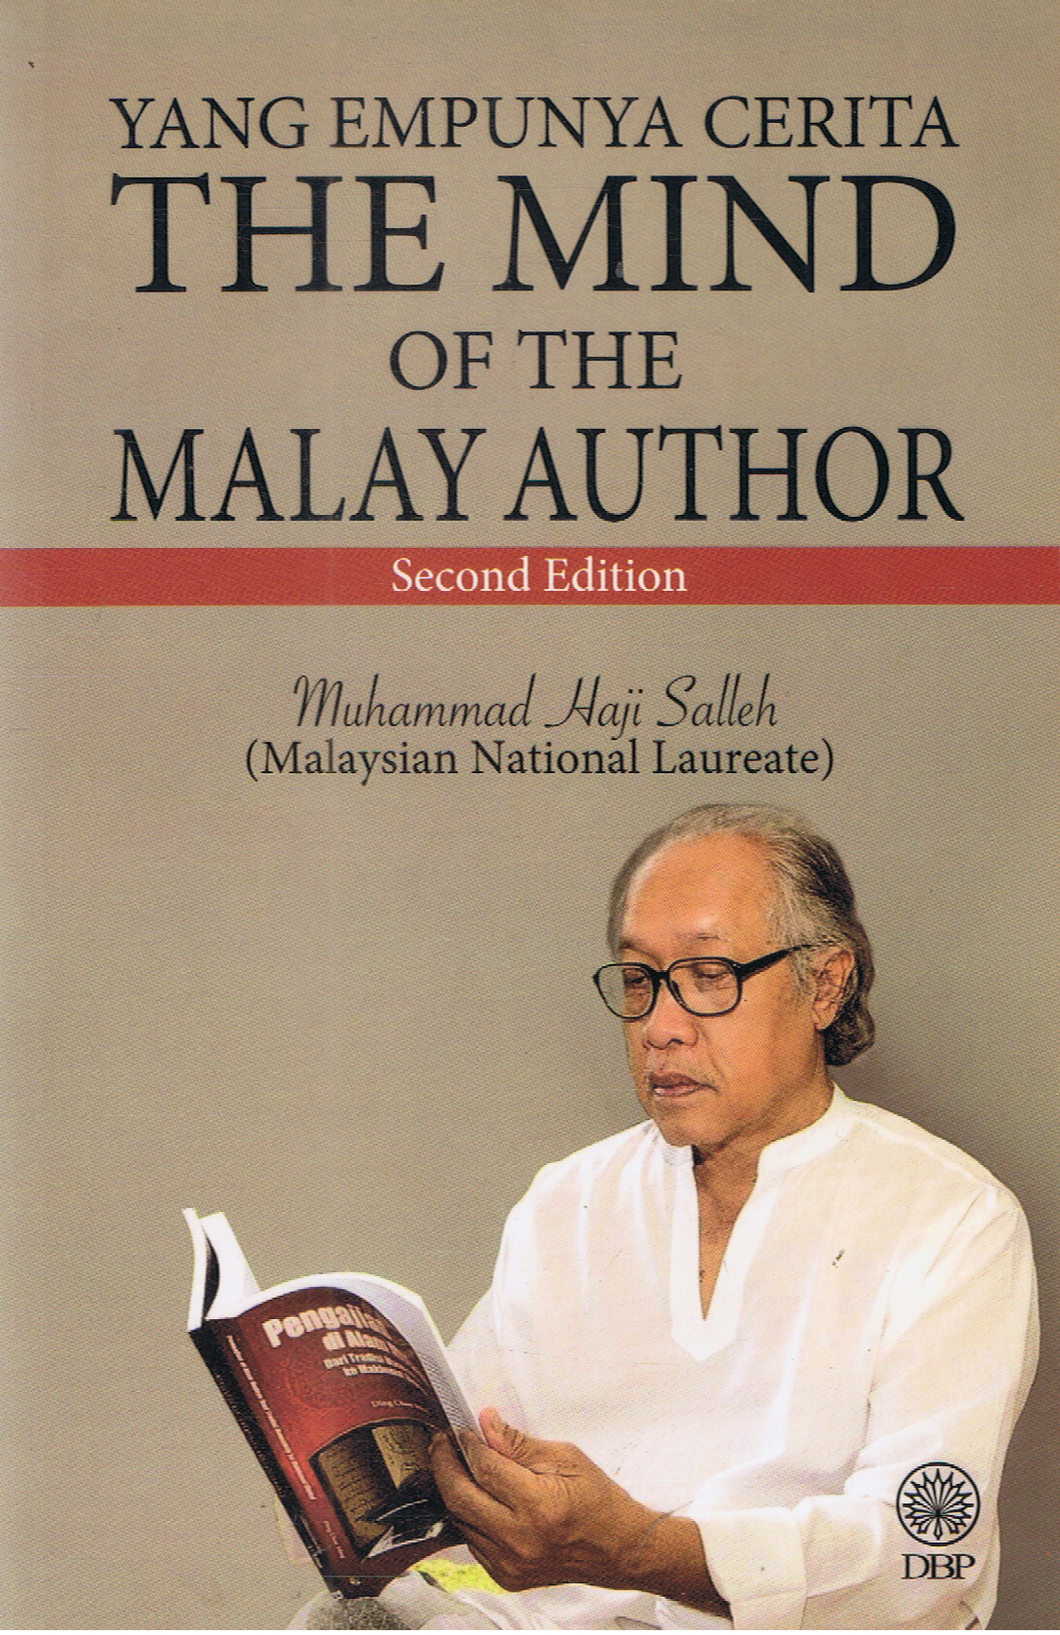 DBP: Yang Empunya Cerita The Mind Of The Malay Author Second Edition